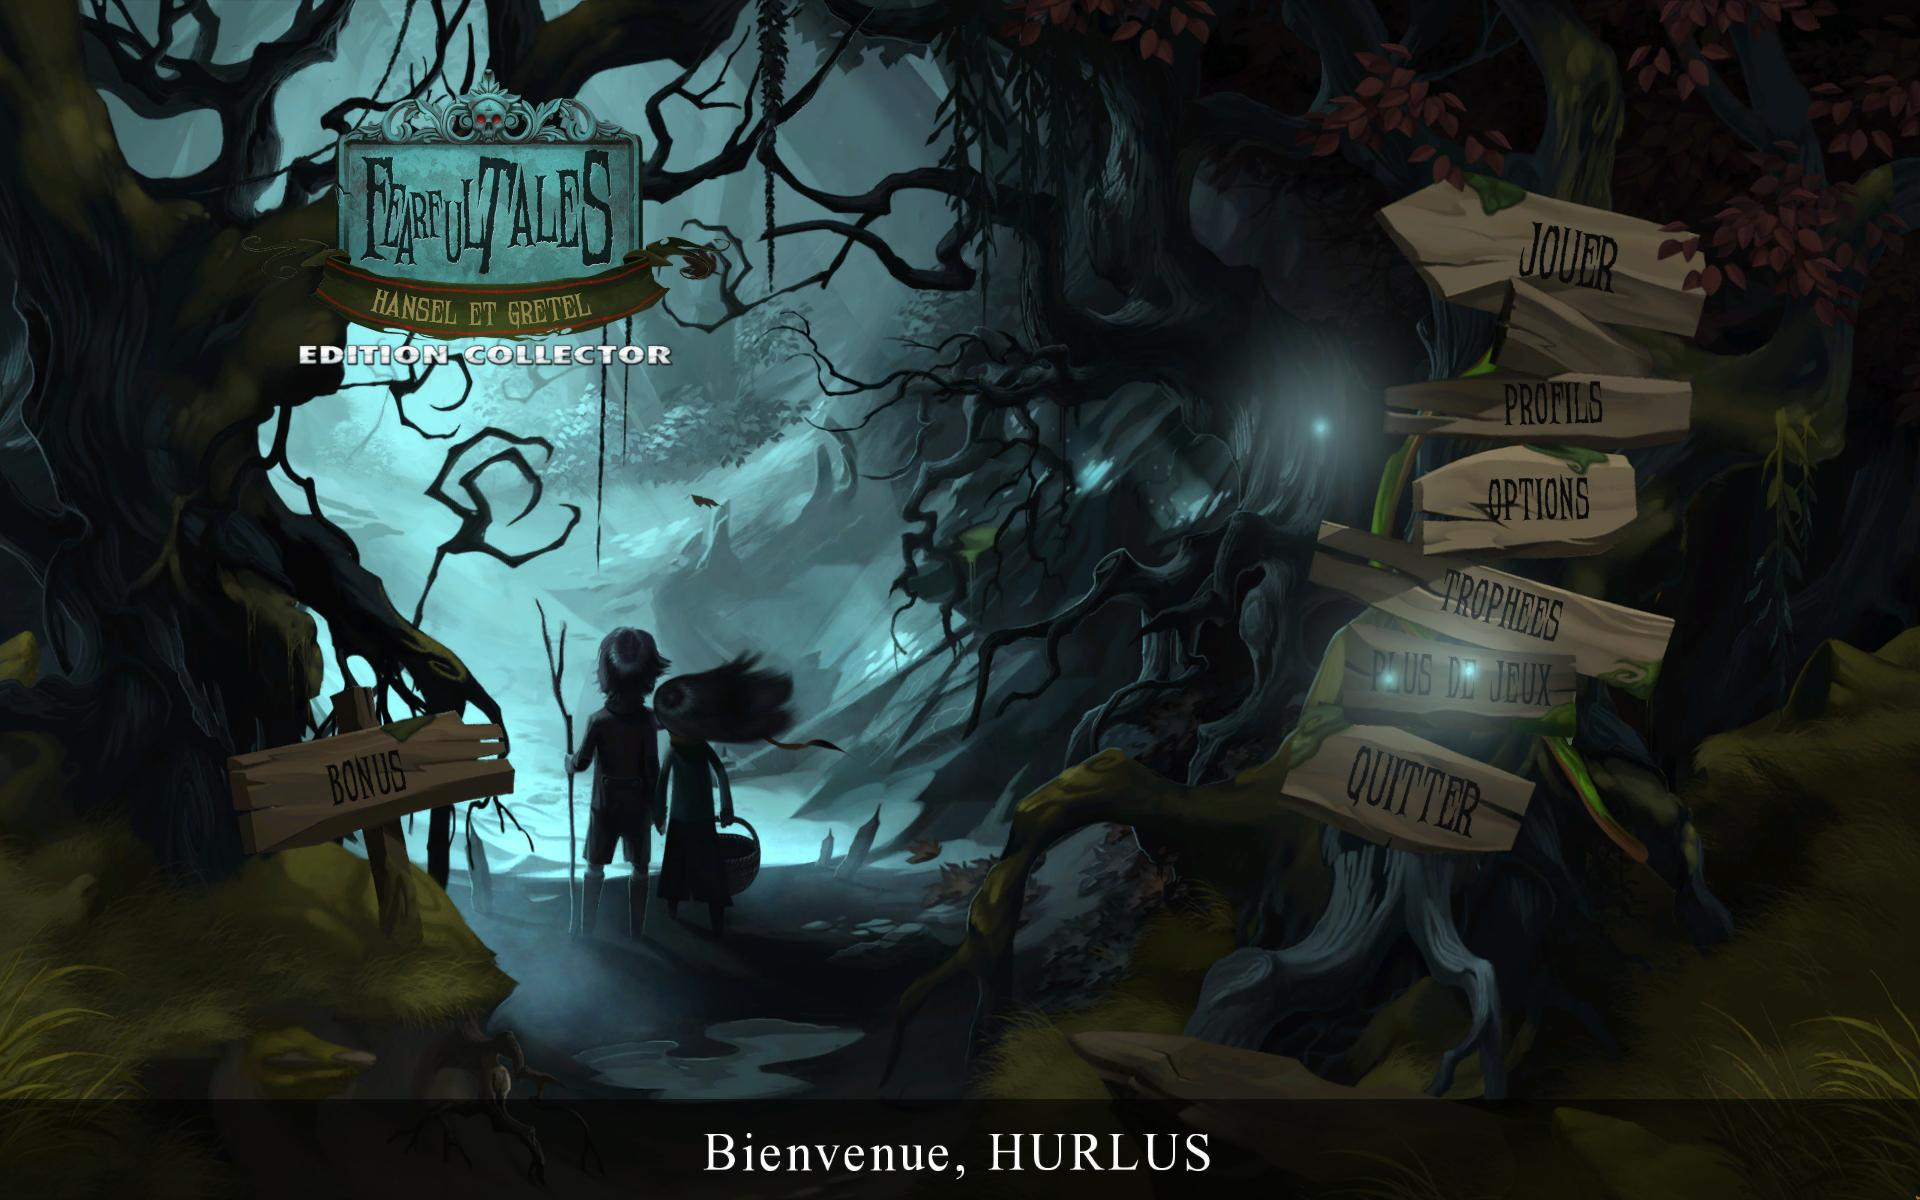 Fearful Tales: Hansel et Gretel Edition Collector [PC] [MULTI]